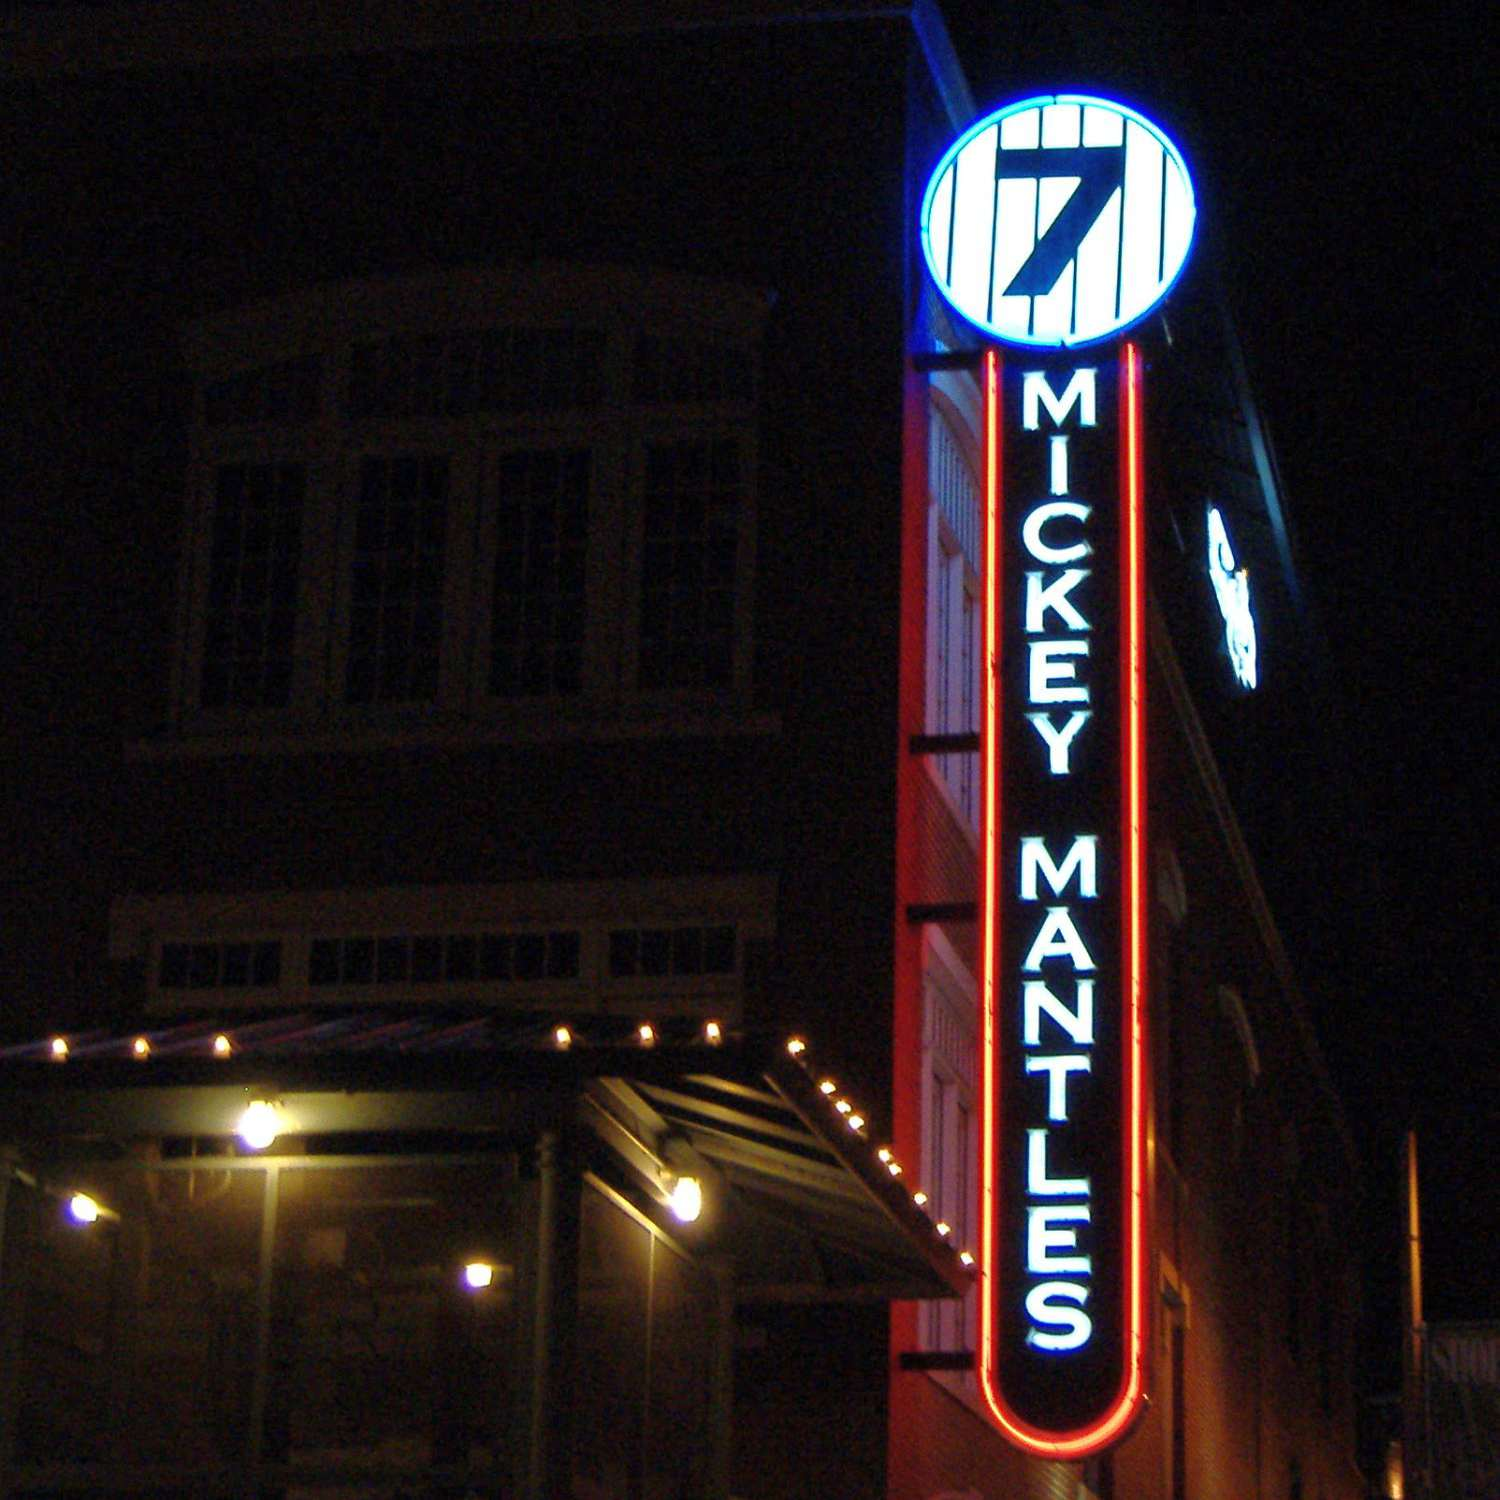 Mickey Mantle's Steakhouse Bricktown